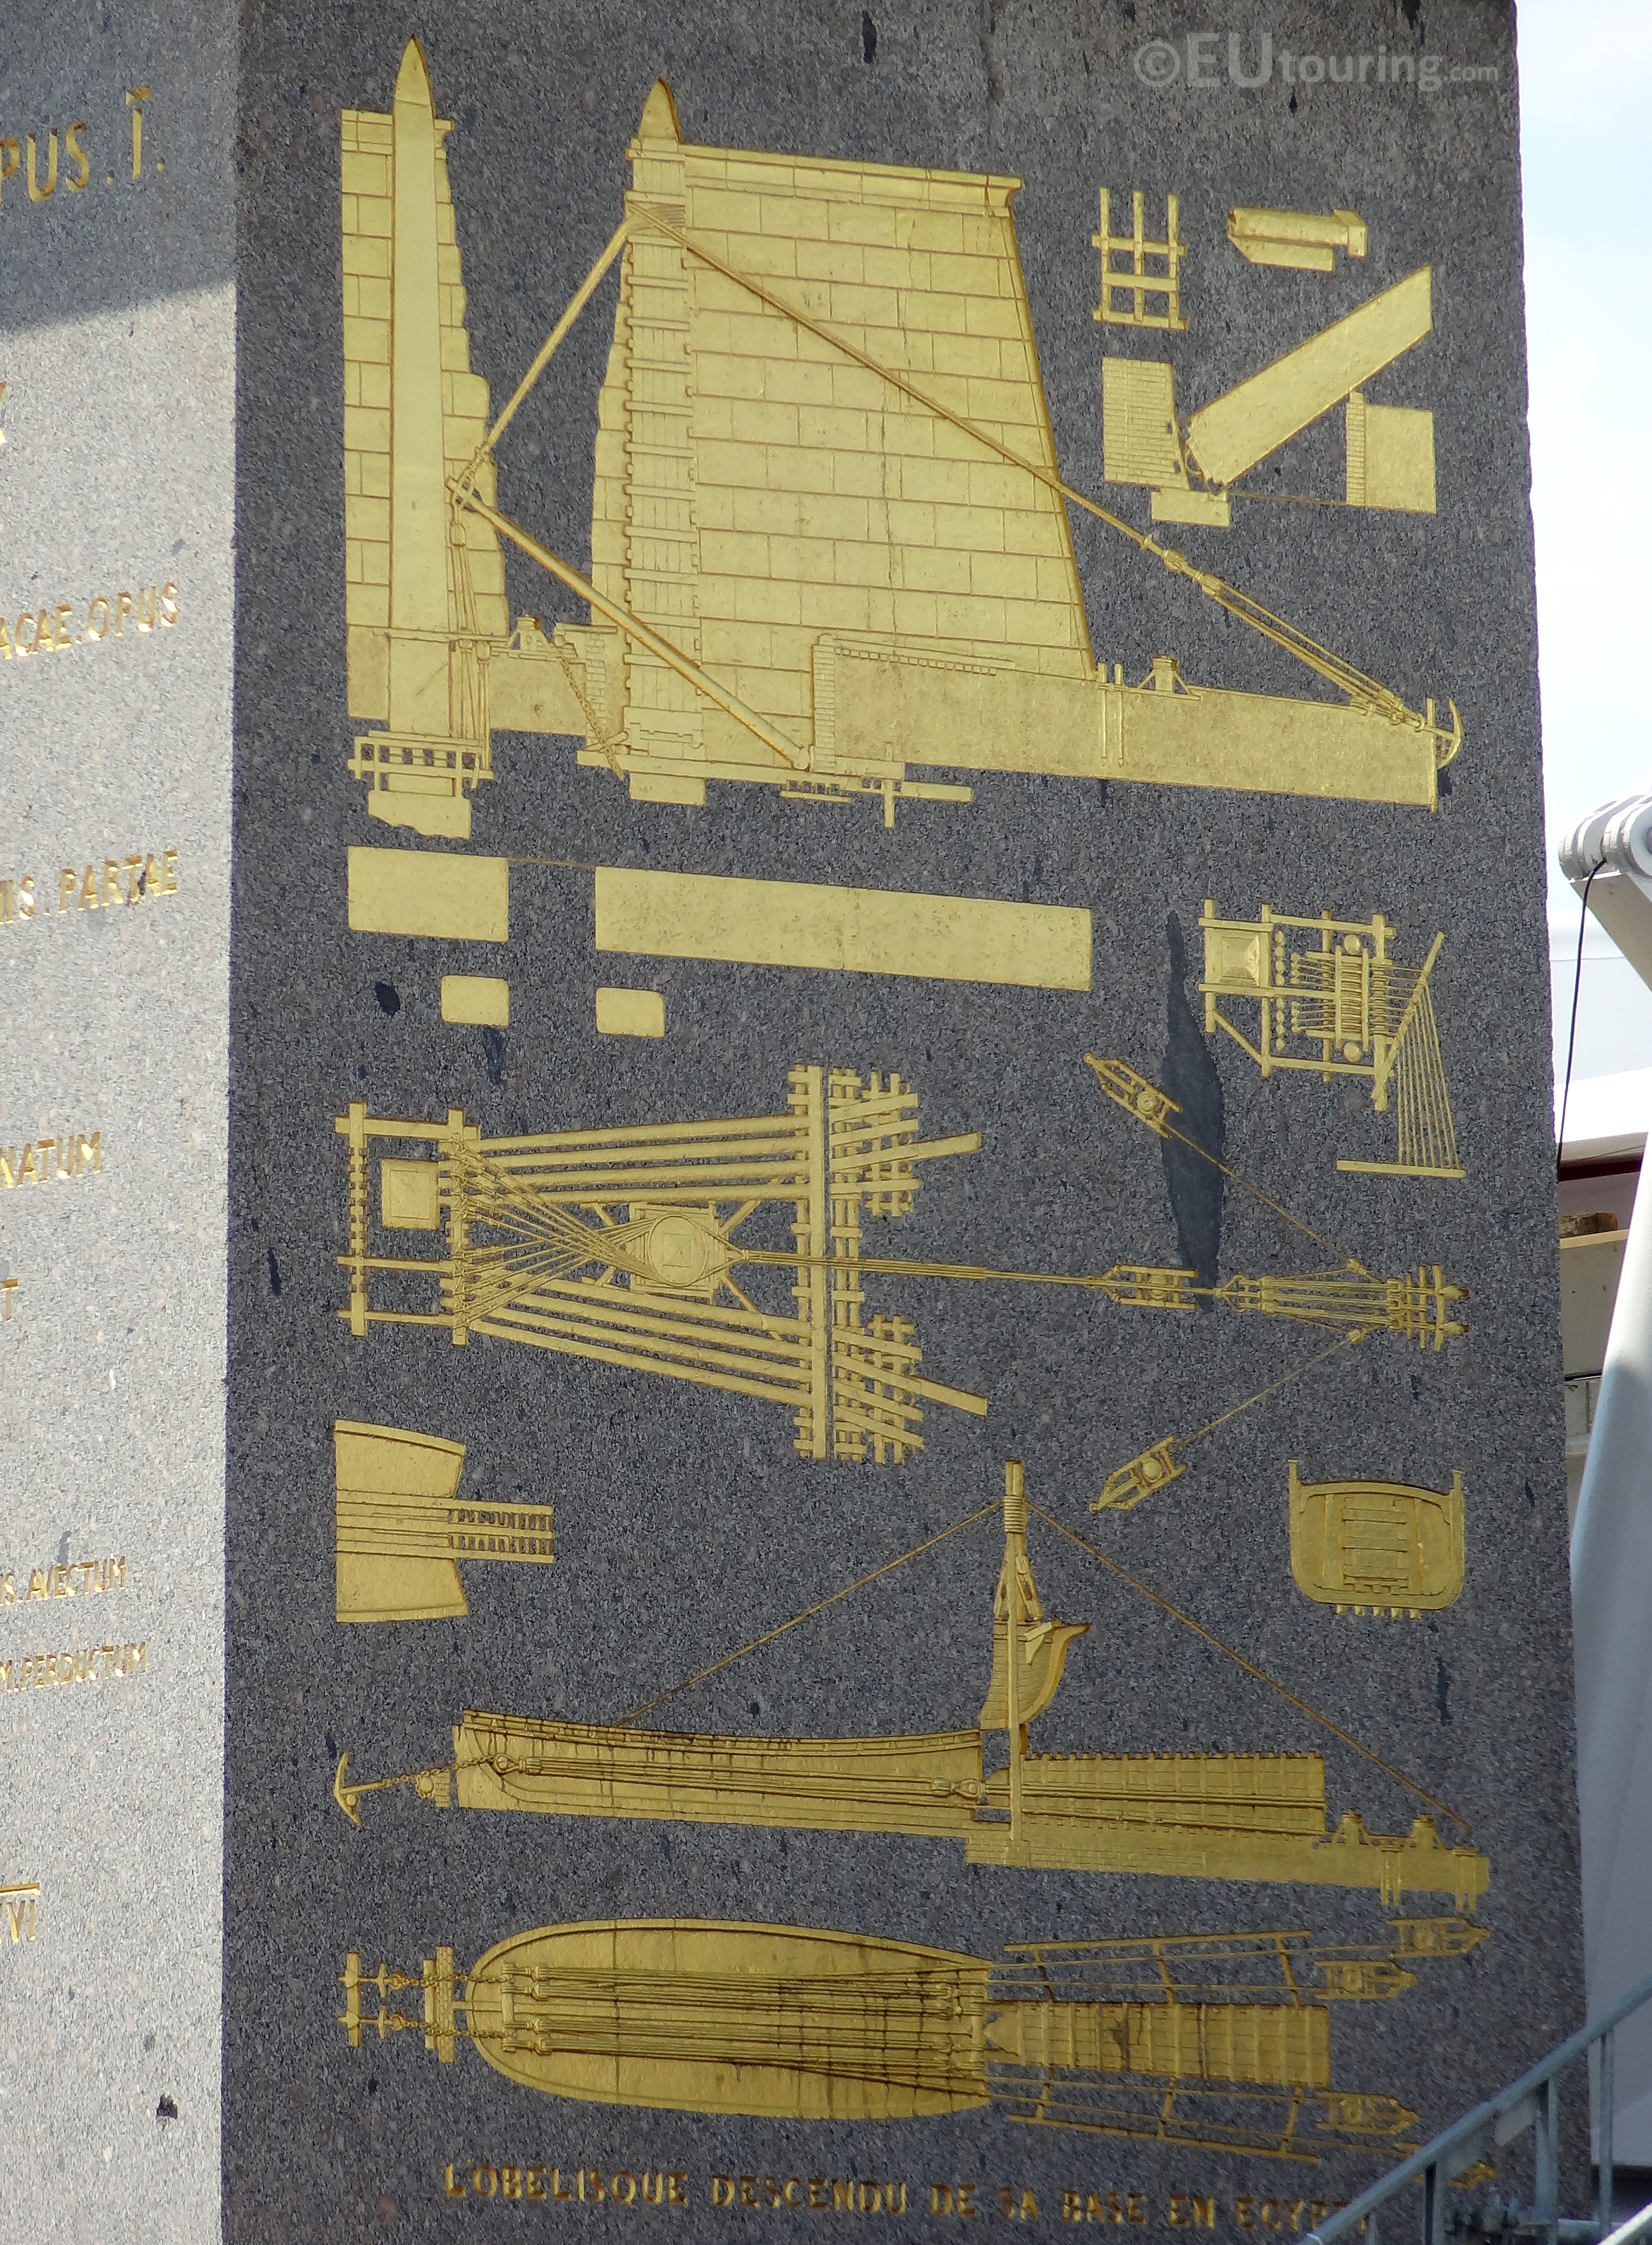 Details of the Luxor Obelisk